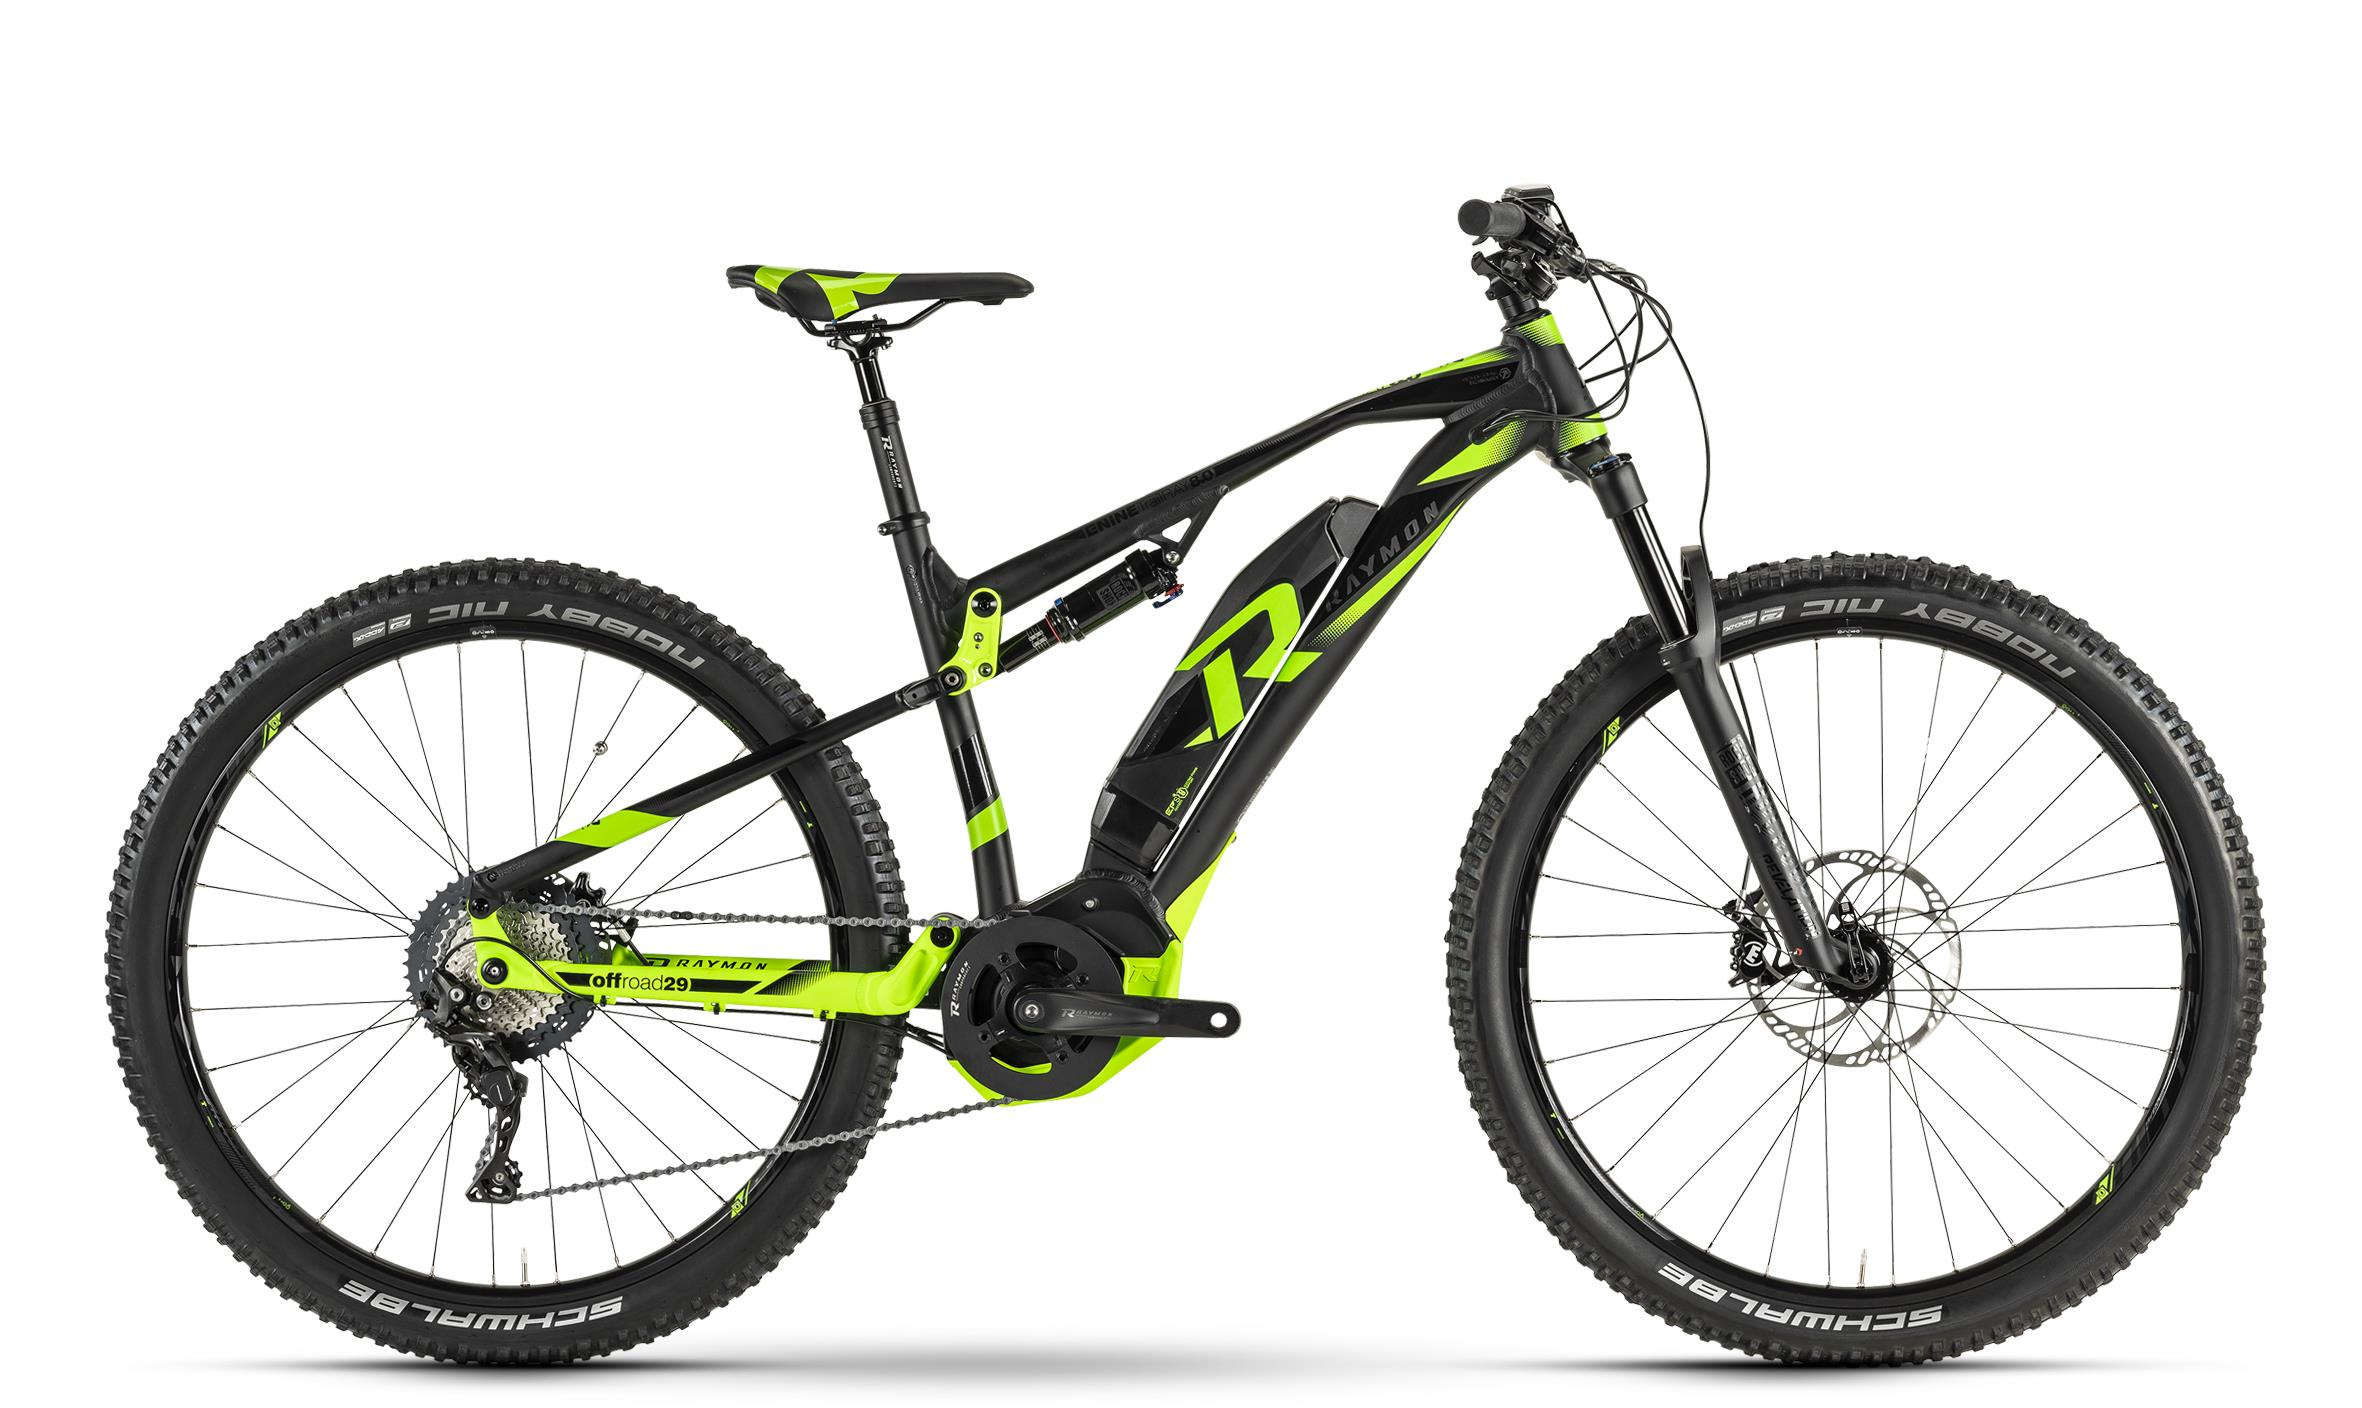 Raymon E-Nine TrailRay 8.0 black/black/green 2019 - MTB Full Suspension 29 -  42 cm